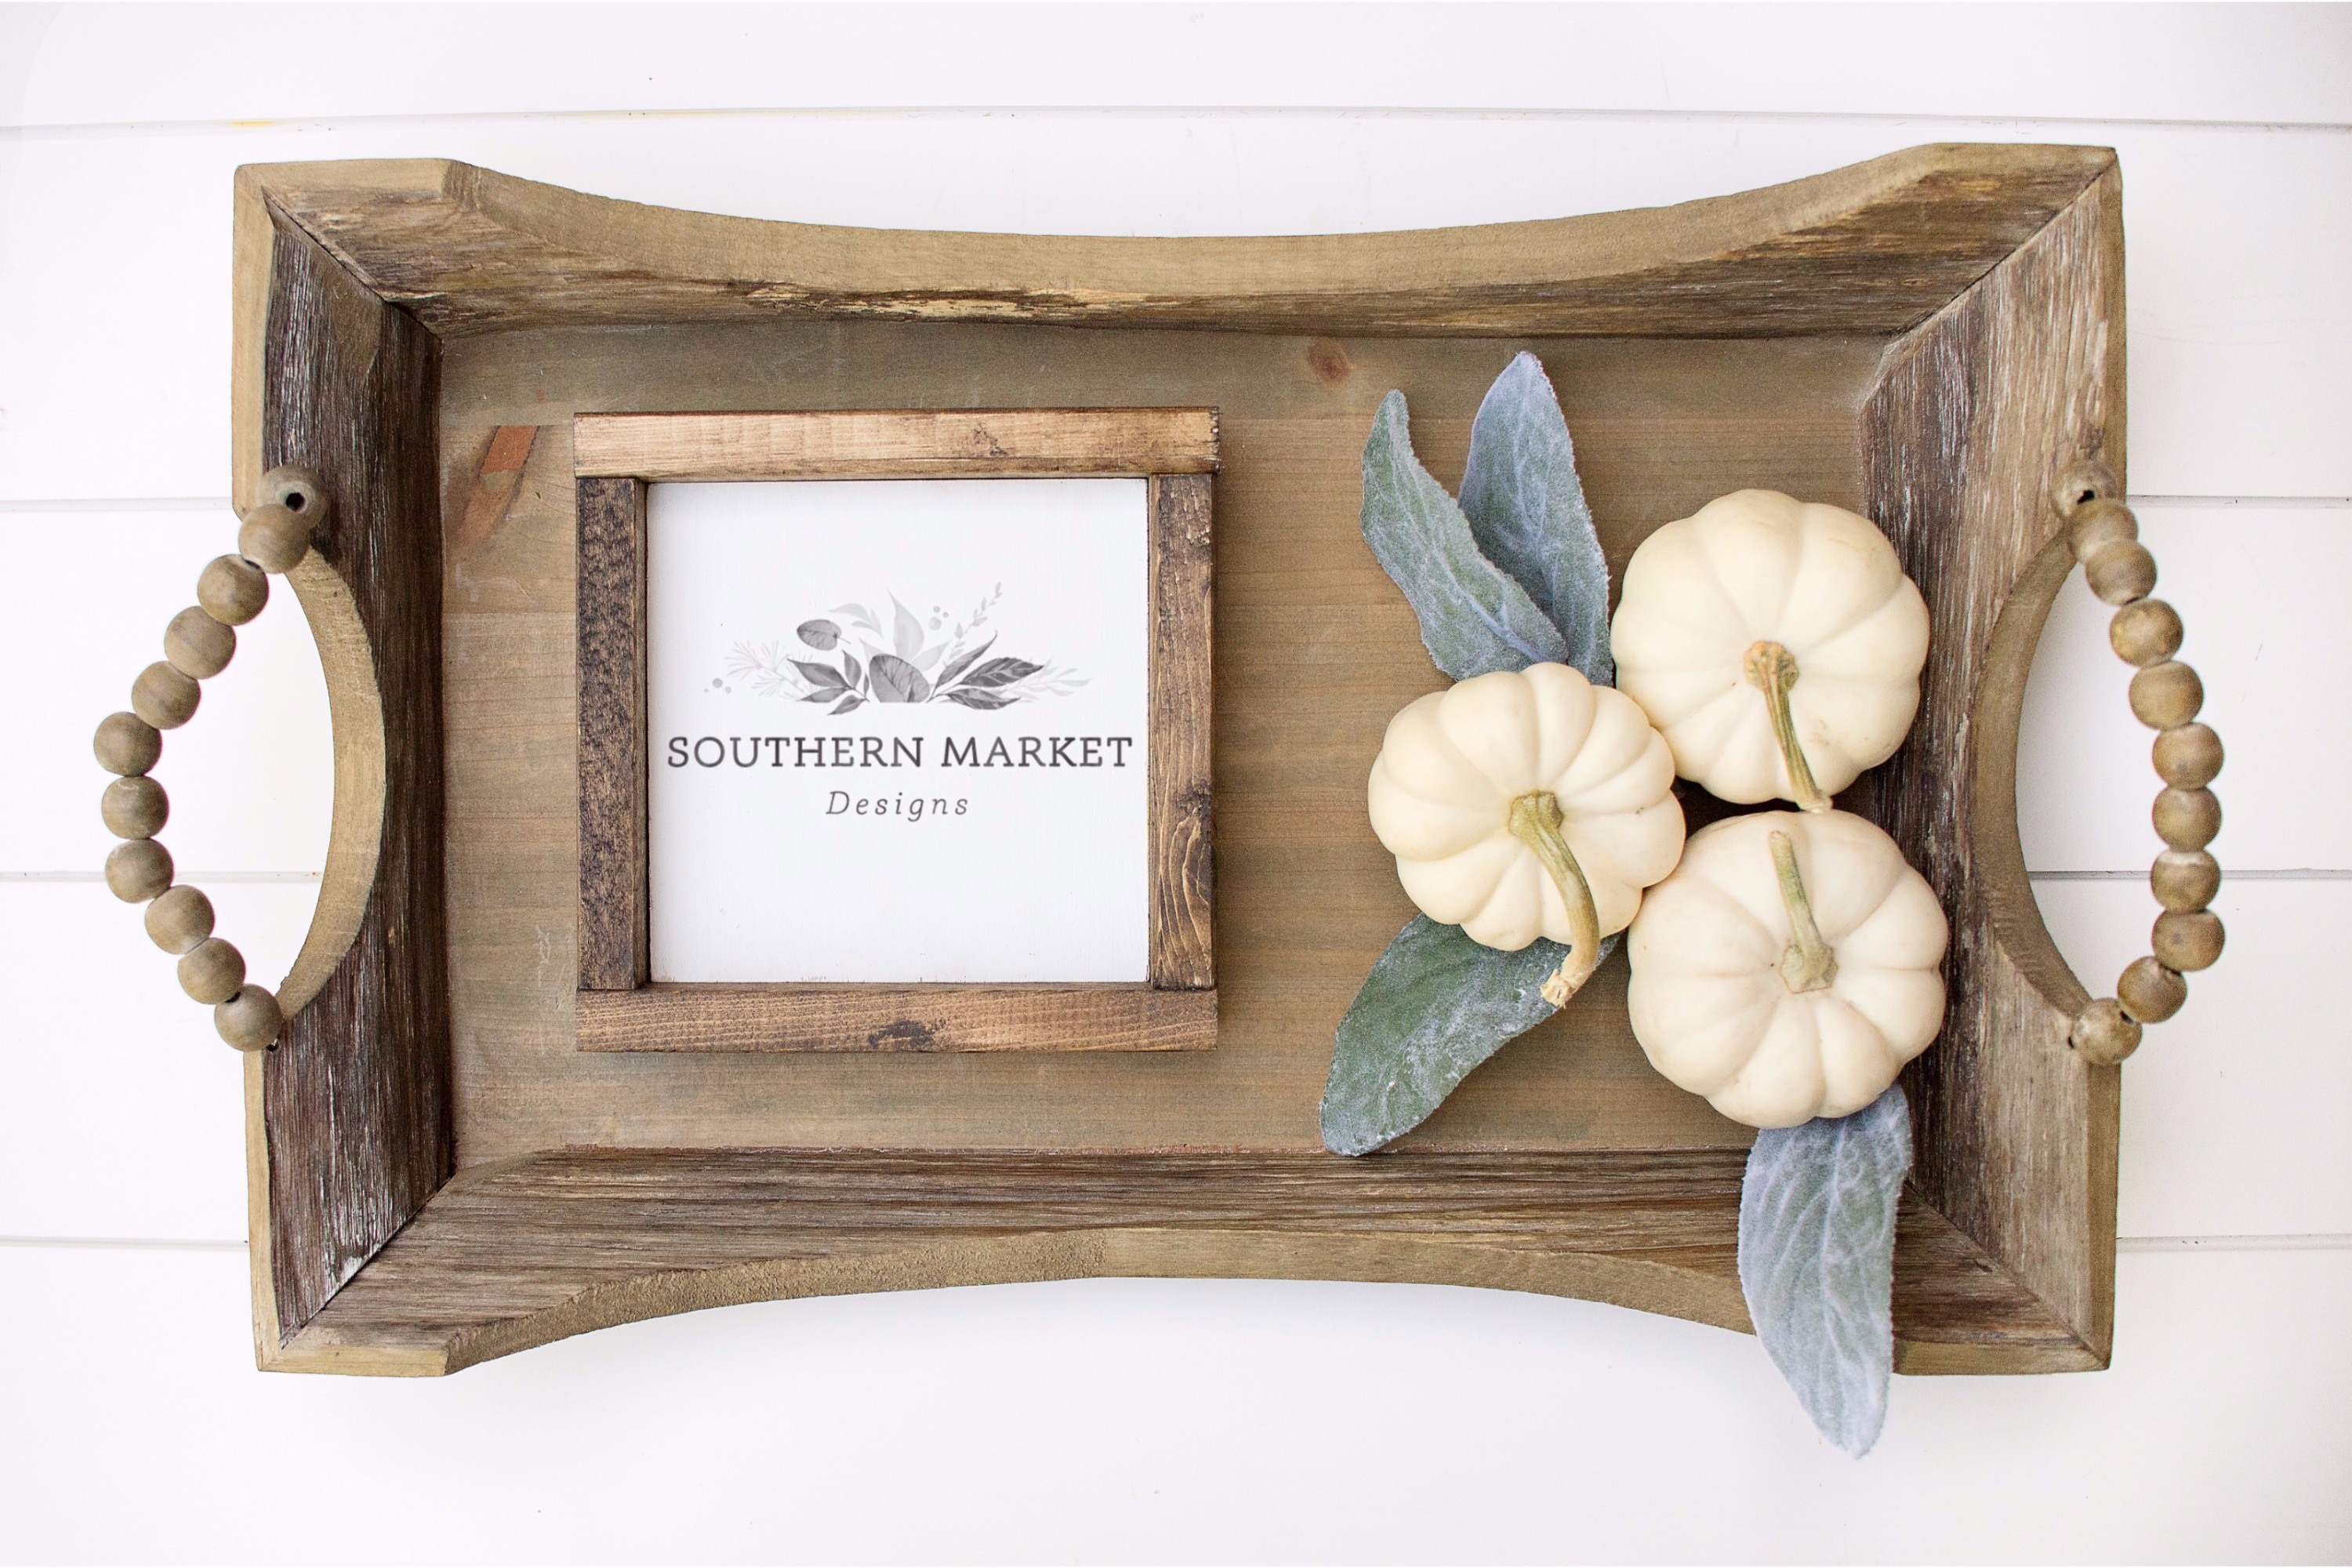 Fall Wood Framed Sign 6x6 Mock Up Photo Stock Photography example image 1